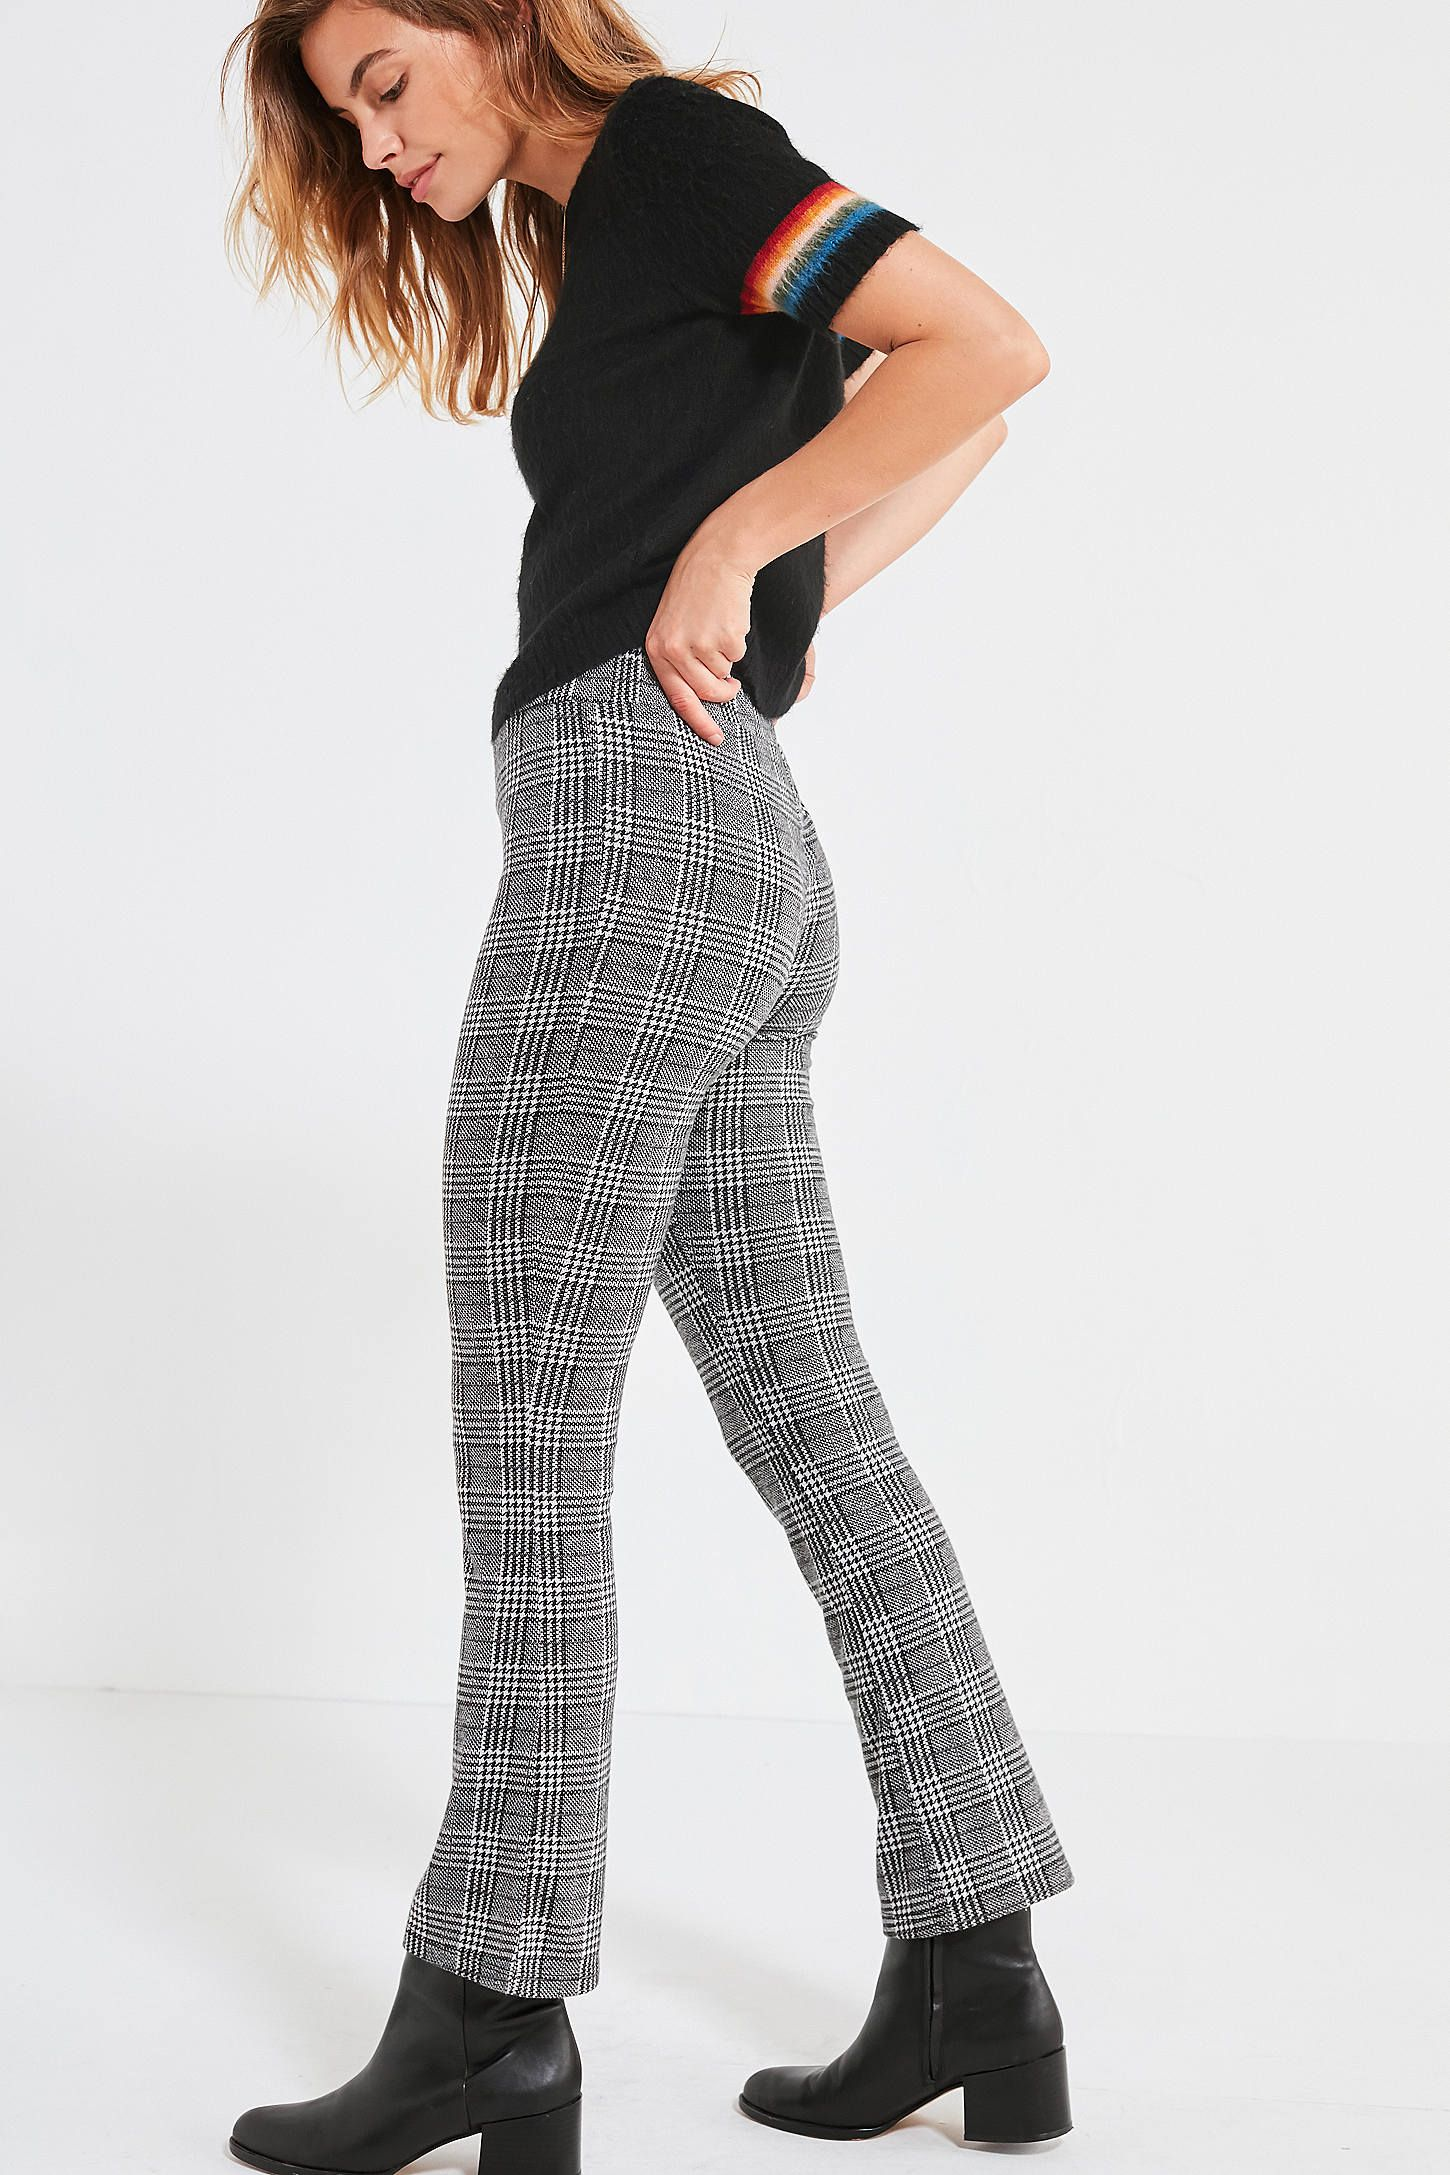 d4a3d5b4b128 Shop UO Plaid Kick Flare Pant at Urban Outfitters today. We carry all the  latest styles